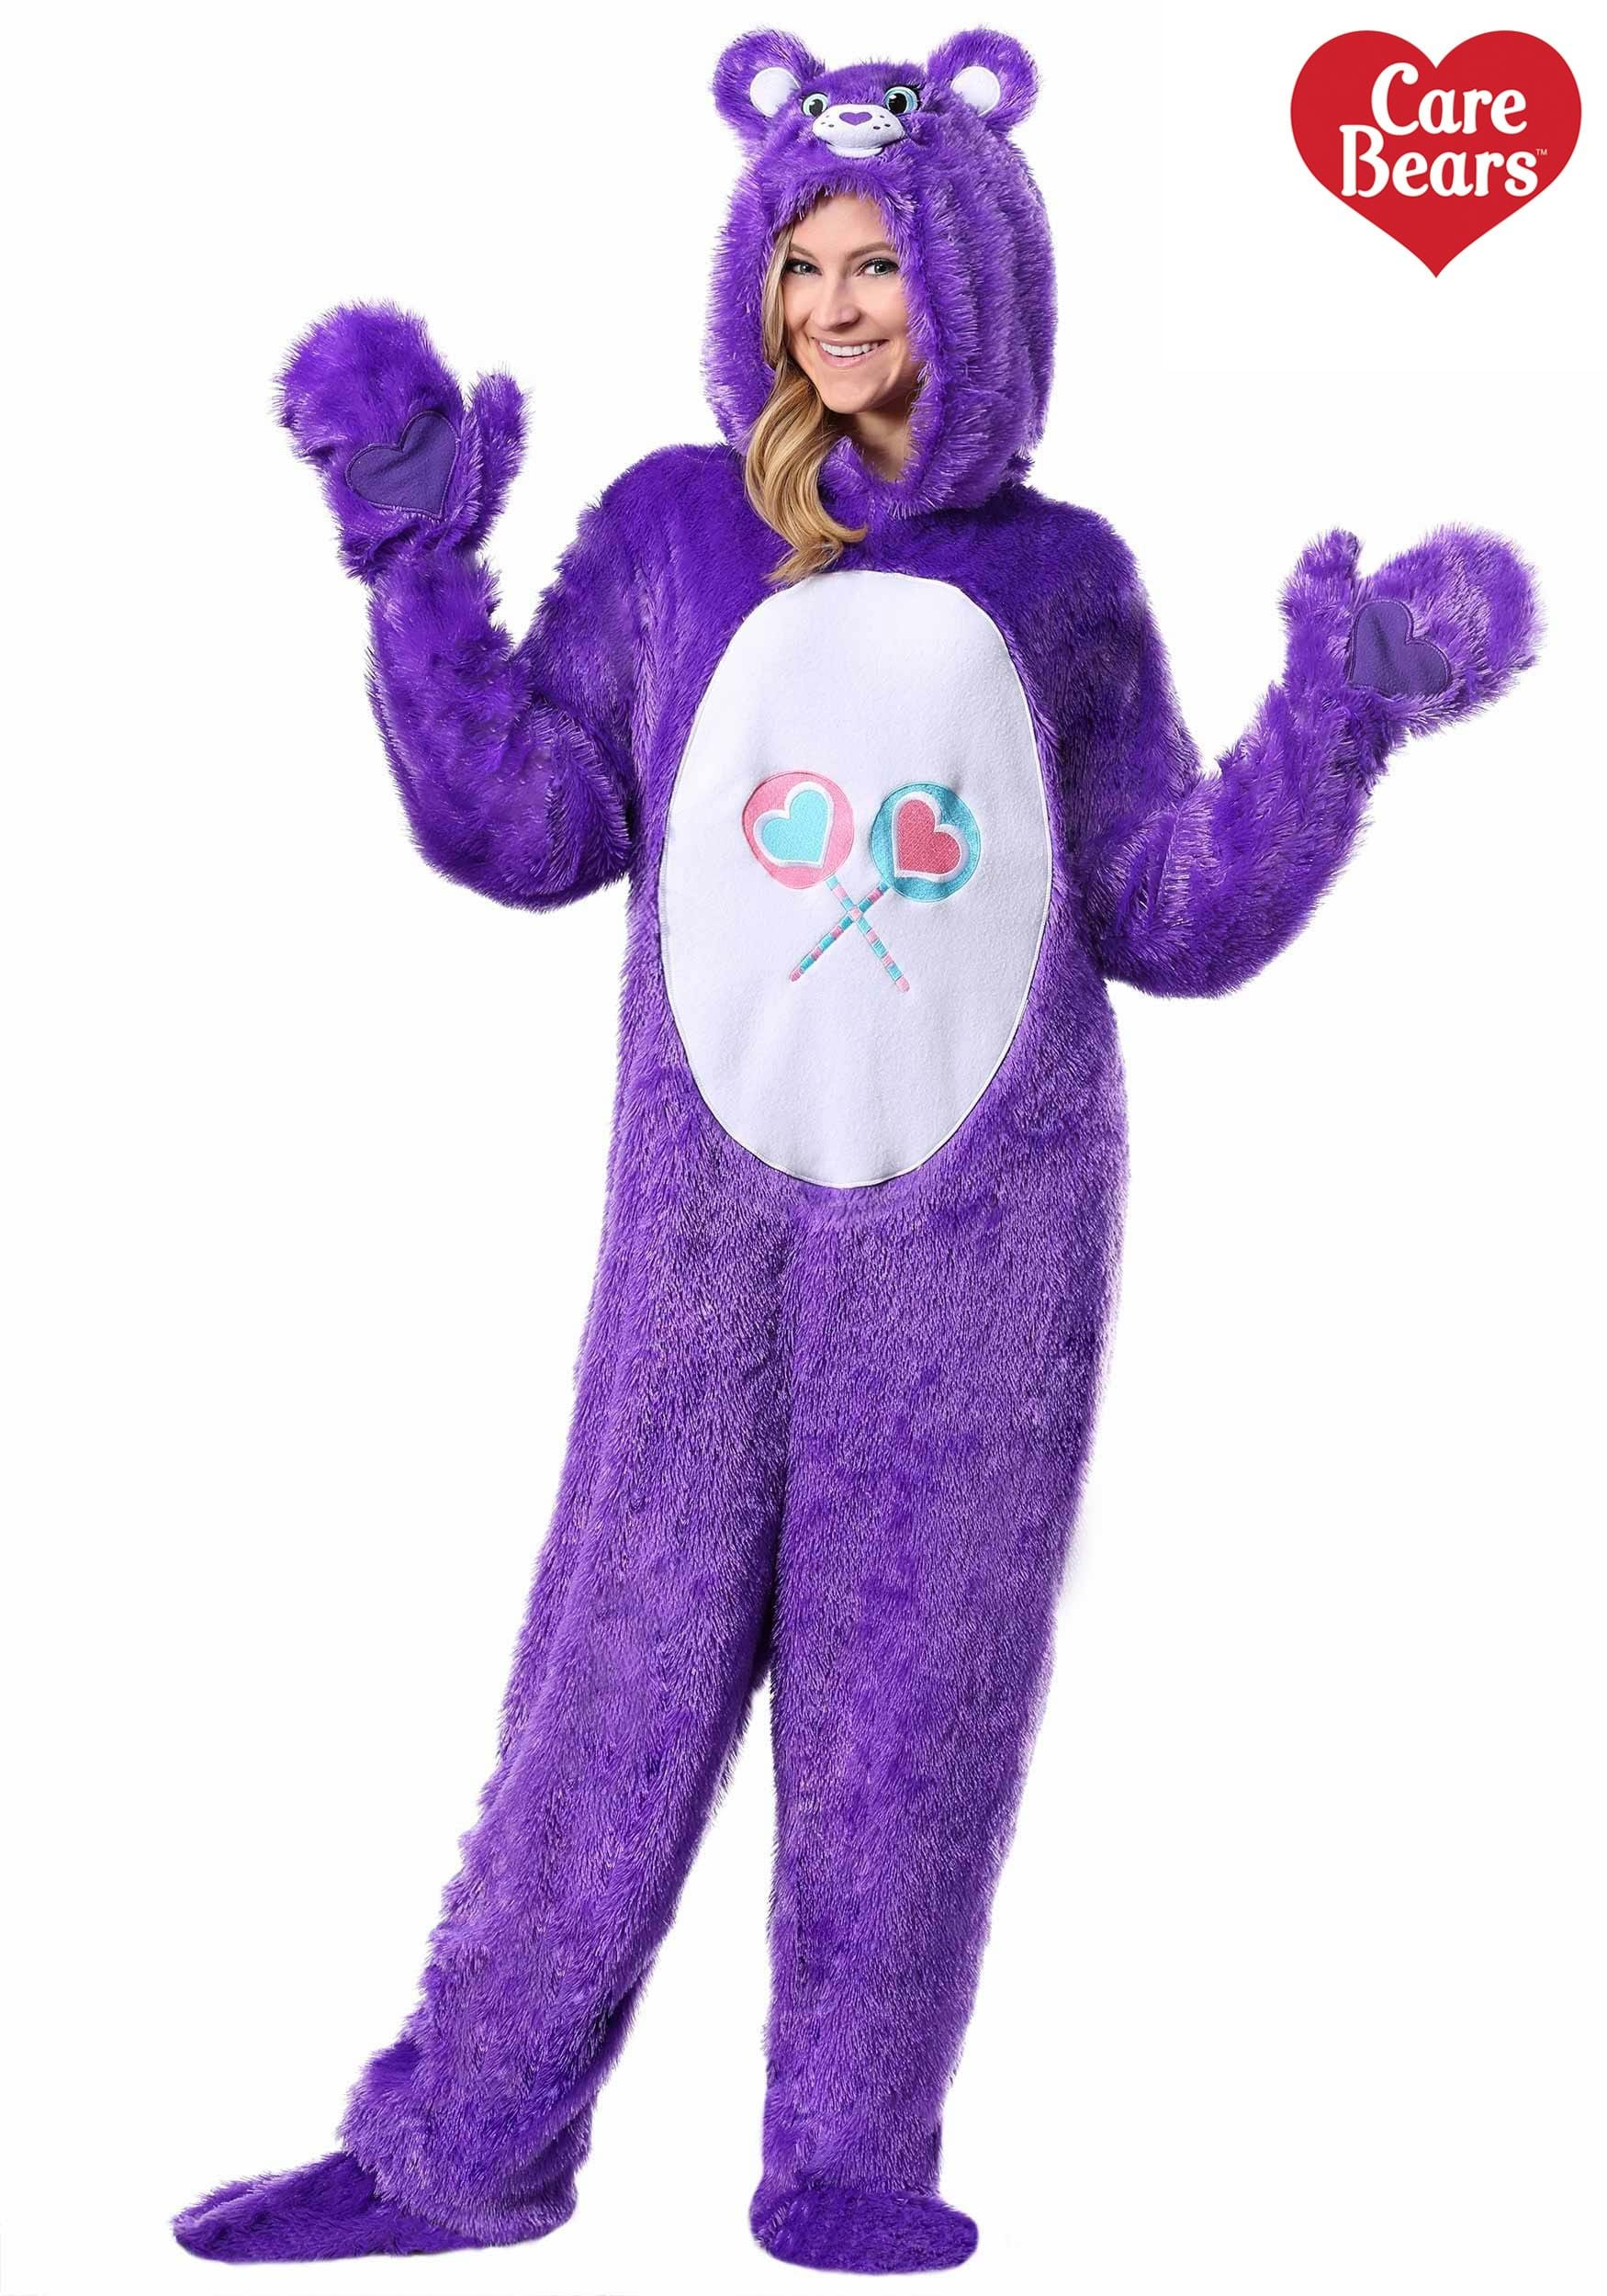 care bears classic share bear costume for adults